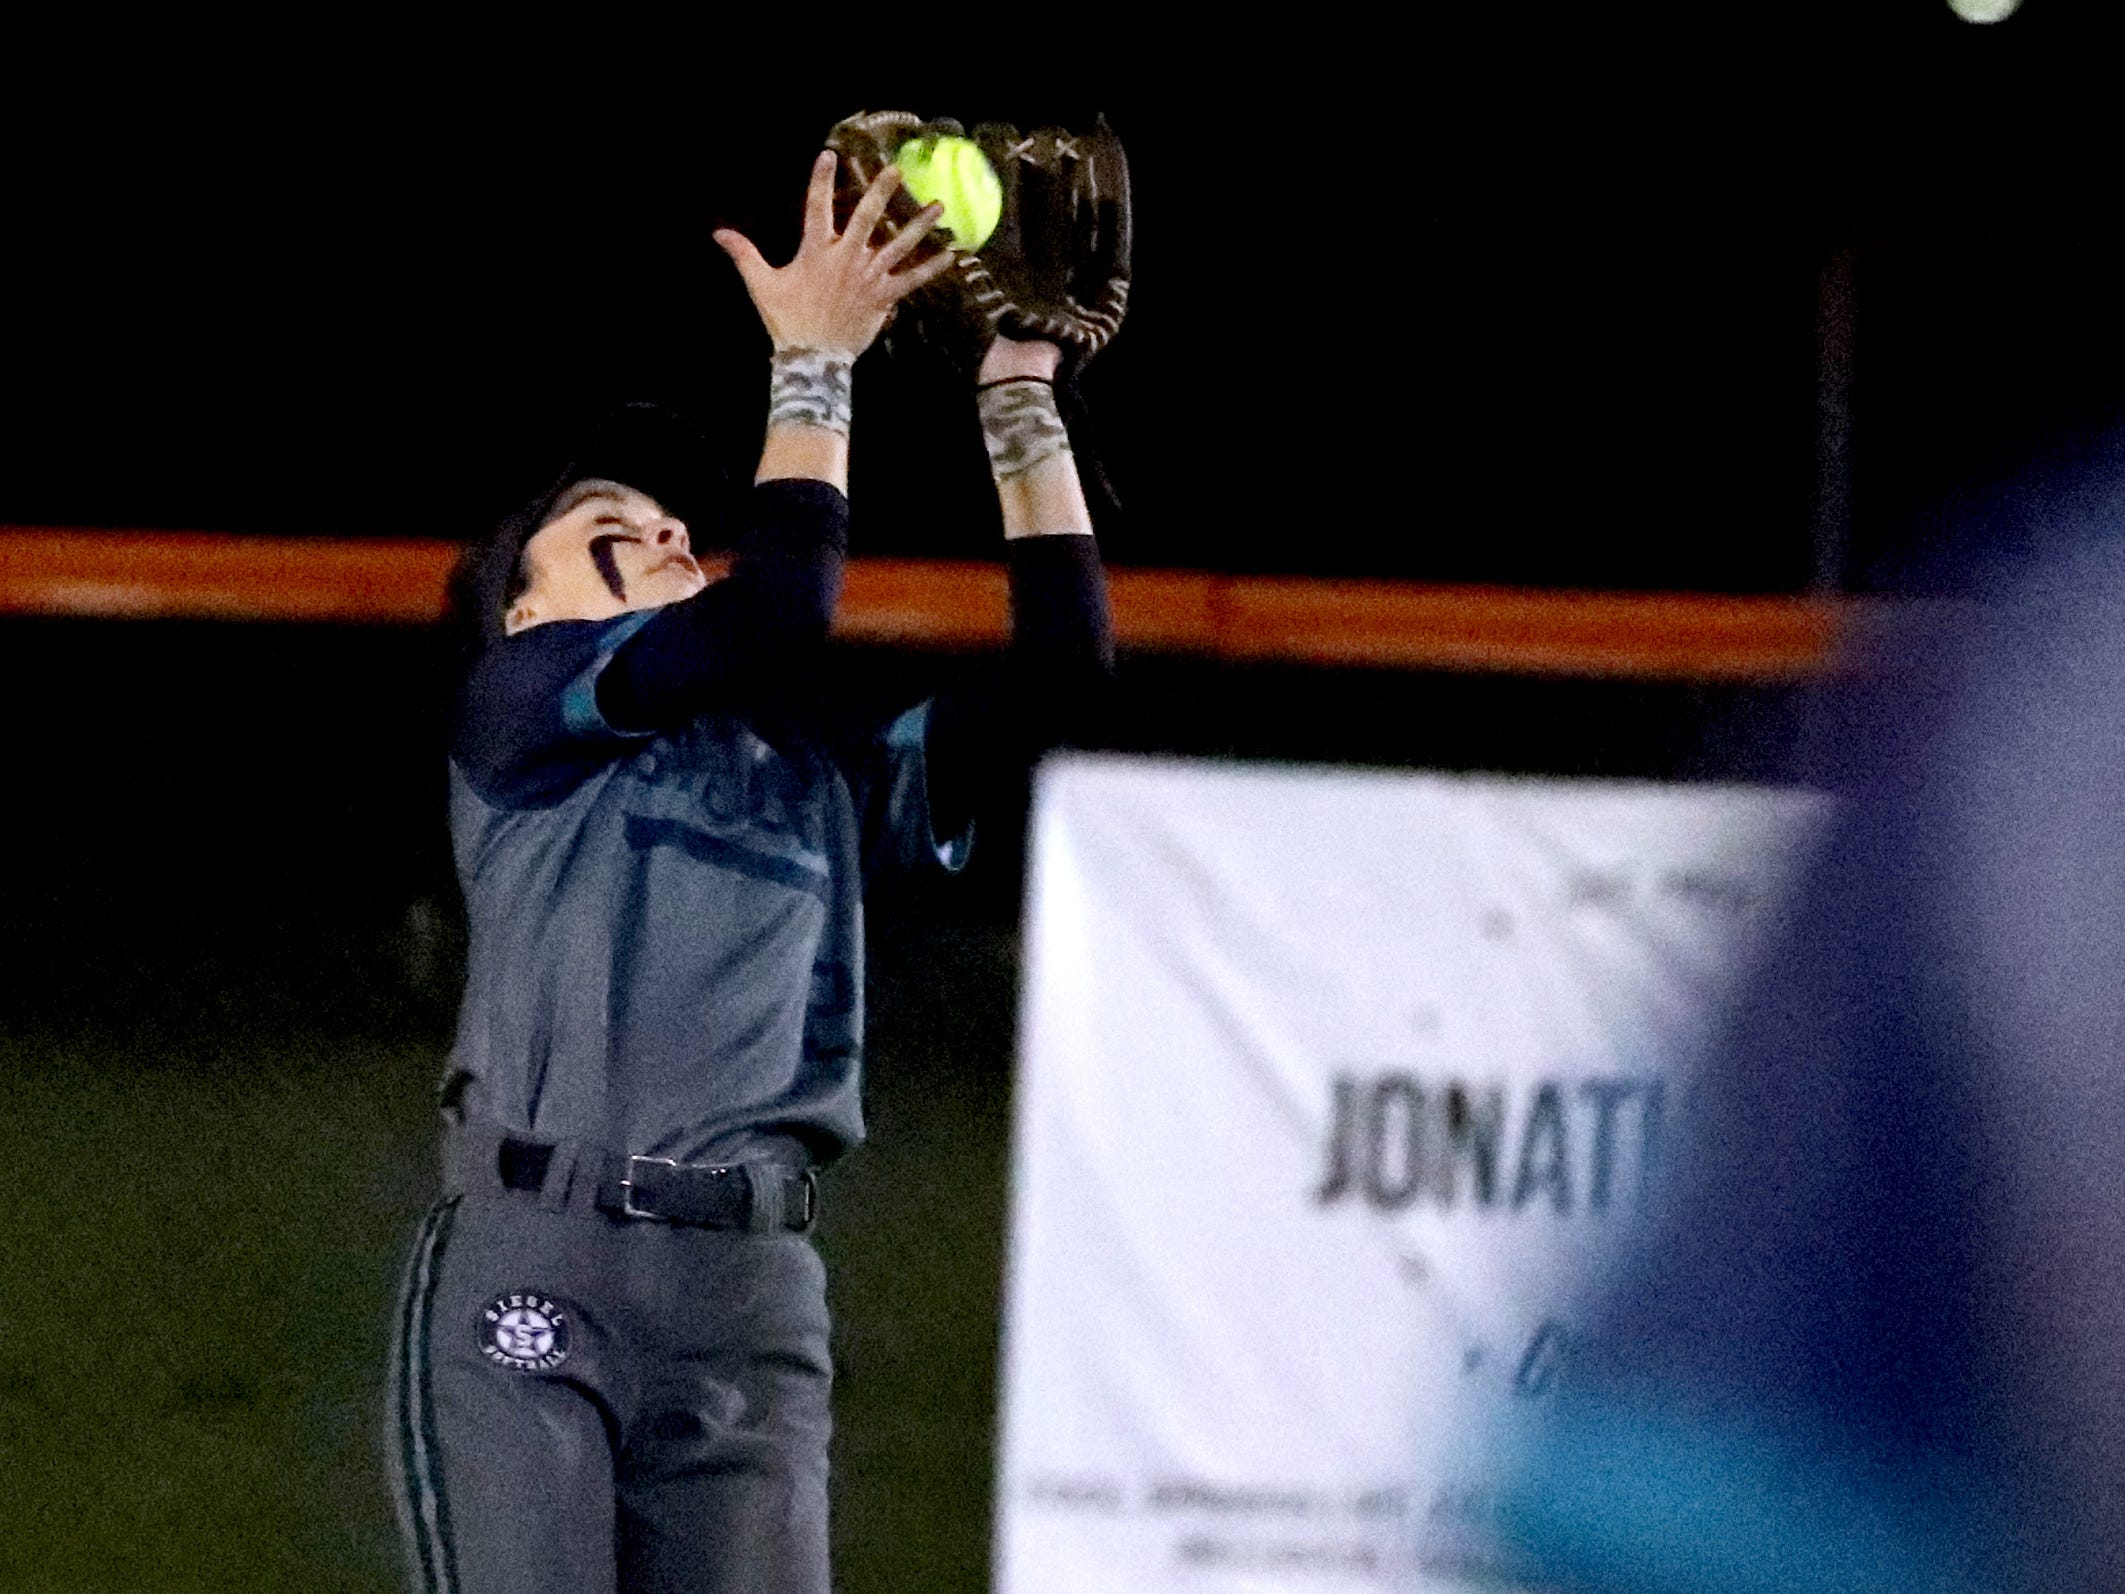 Siegel's Reagan Duran (2) makes a catch and an out against Blackman, on Monday, March 18, 2019, at Blackman.